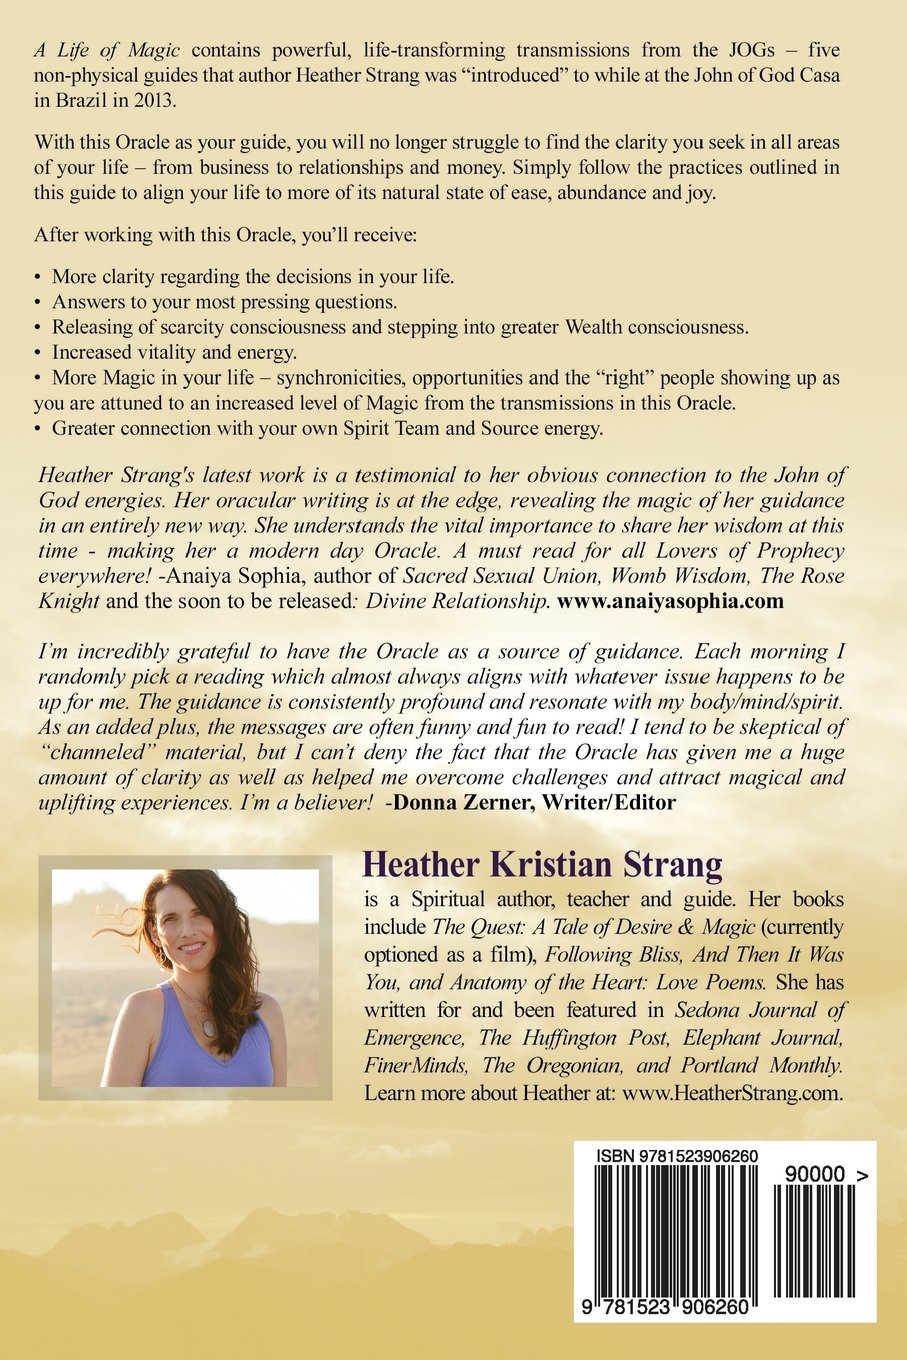 A Life Of Magic An Oracle For Spirit Led Living Heather Kristian